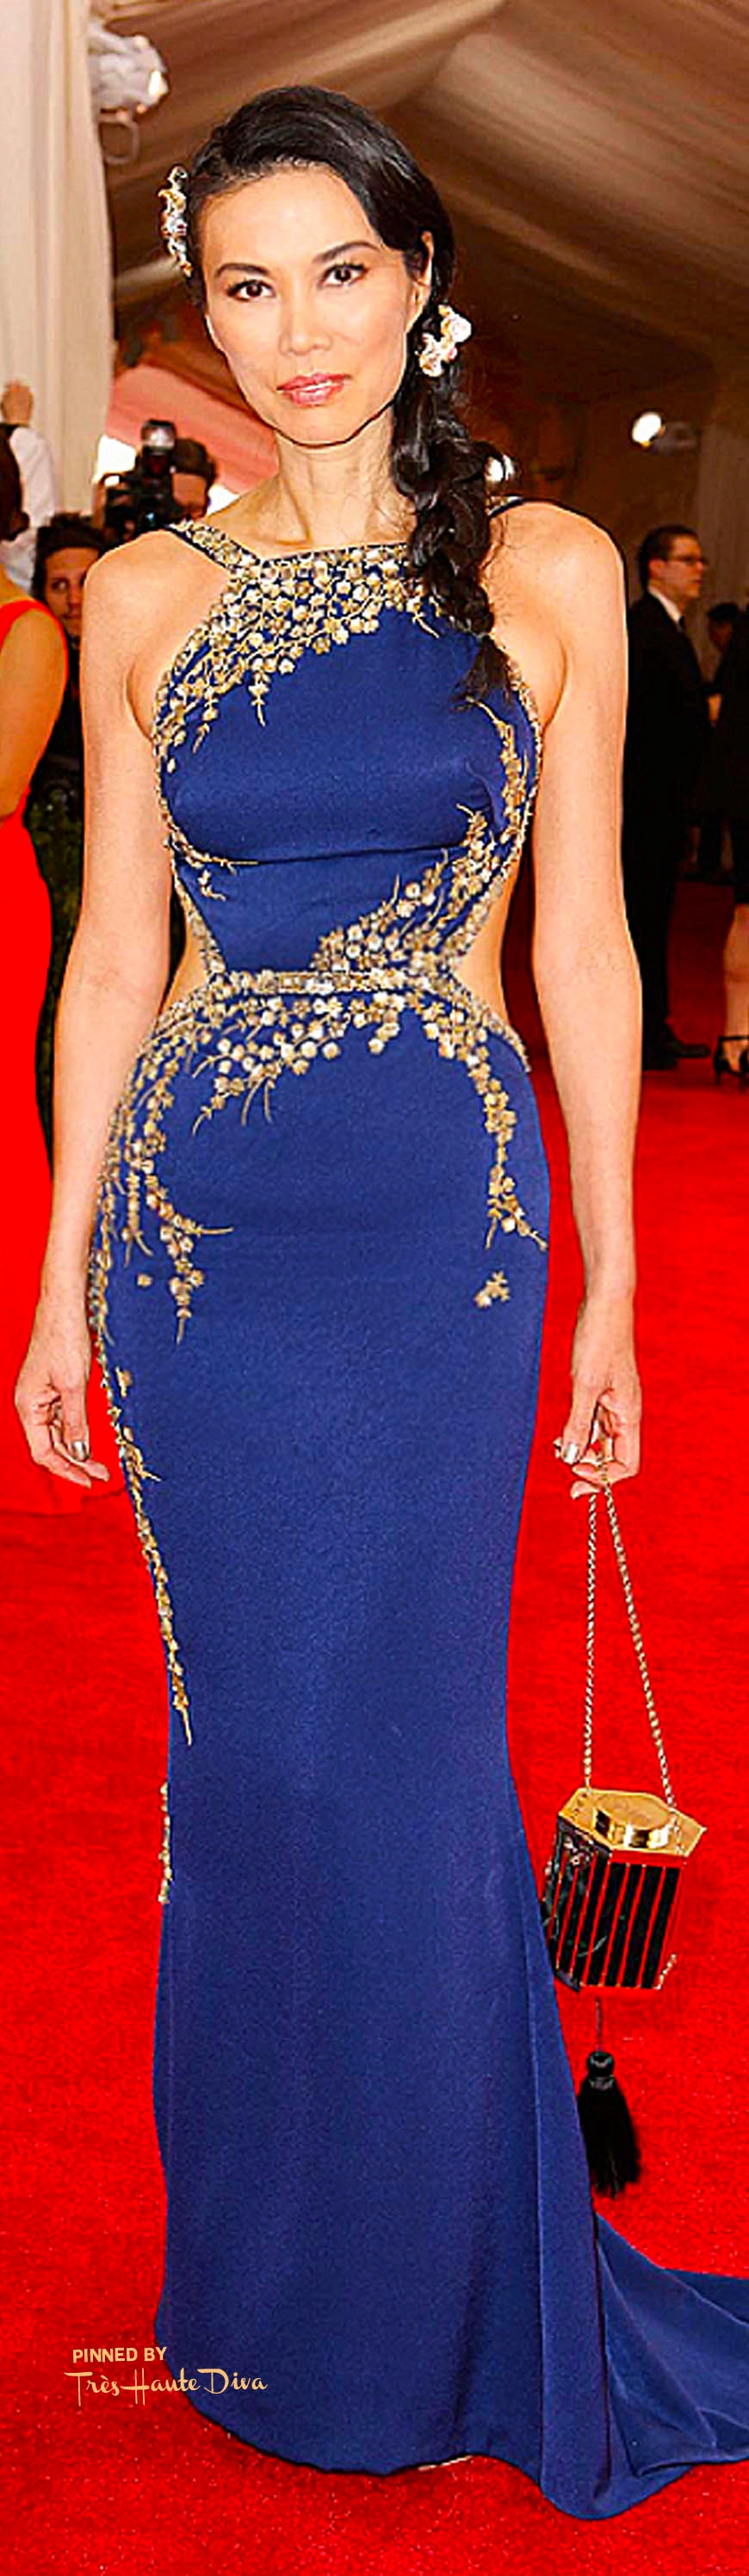 Wendi Murdoch, with Cindy Chao jewels and a Kotur clutch Indigitalimages.com/ Alessandro Garofalo